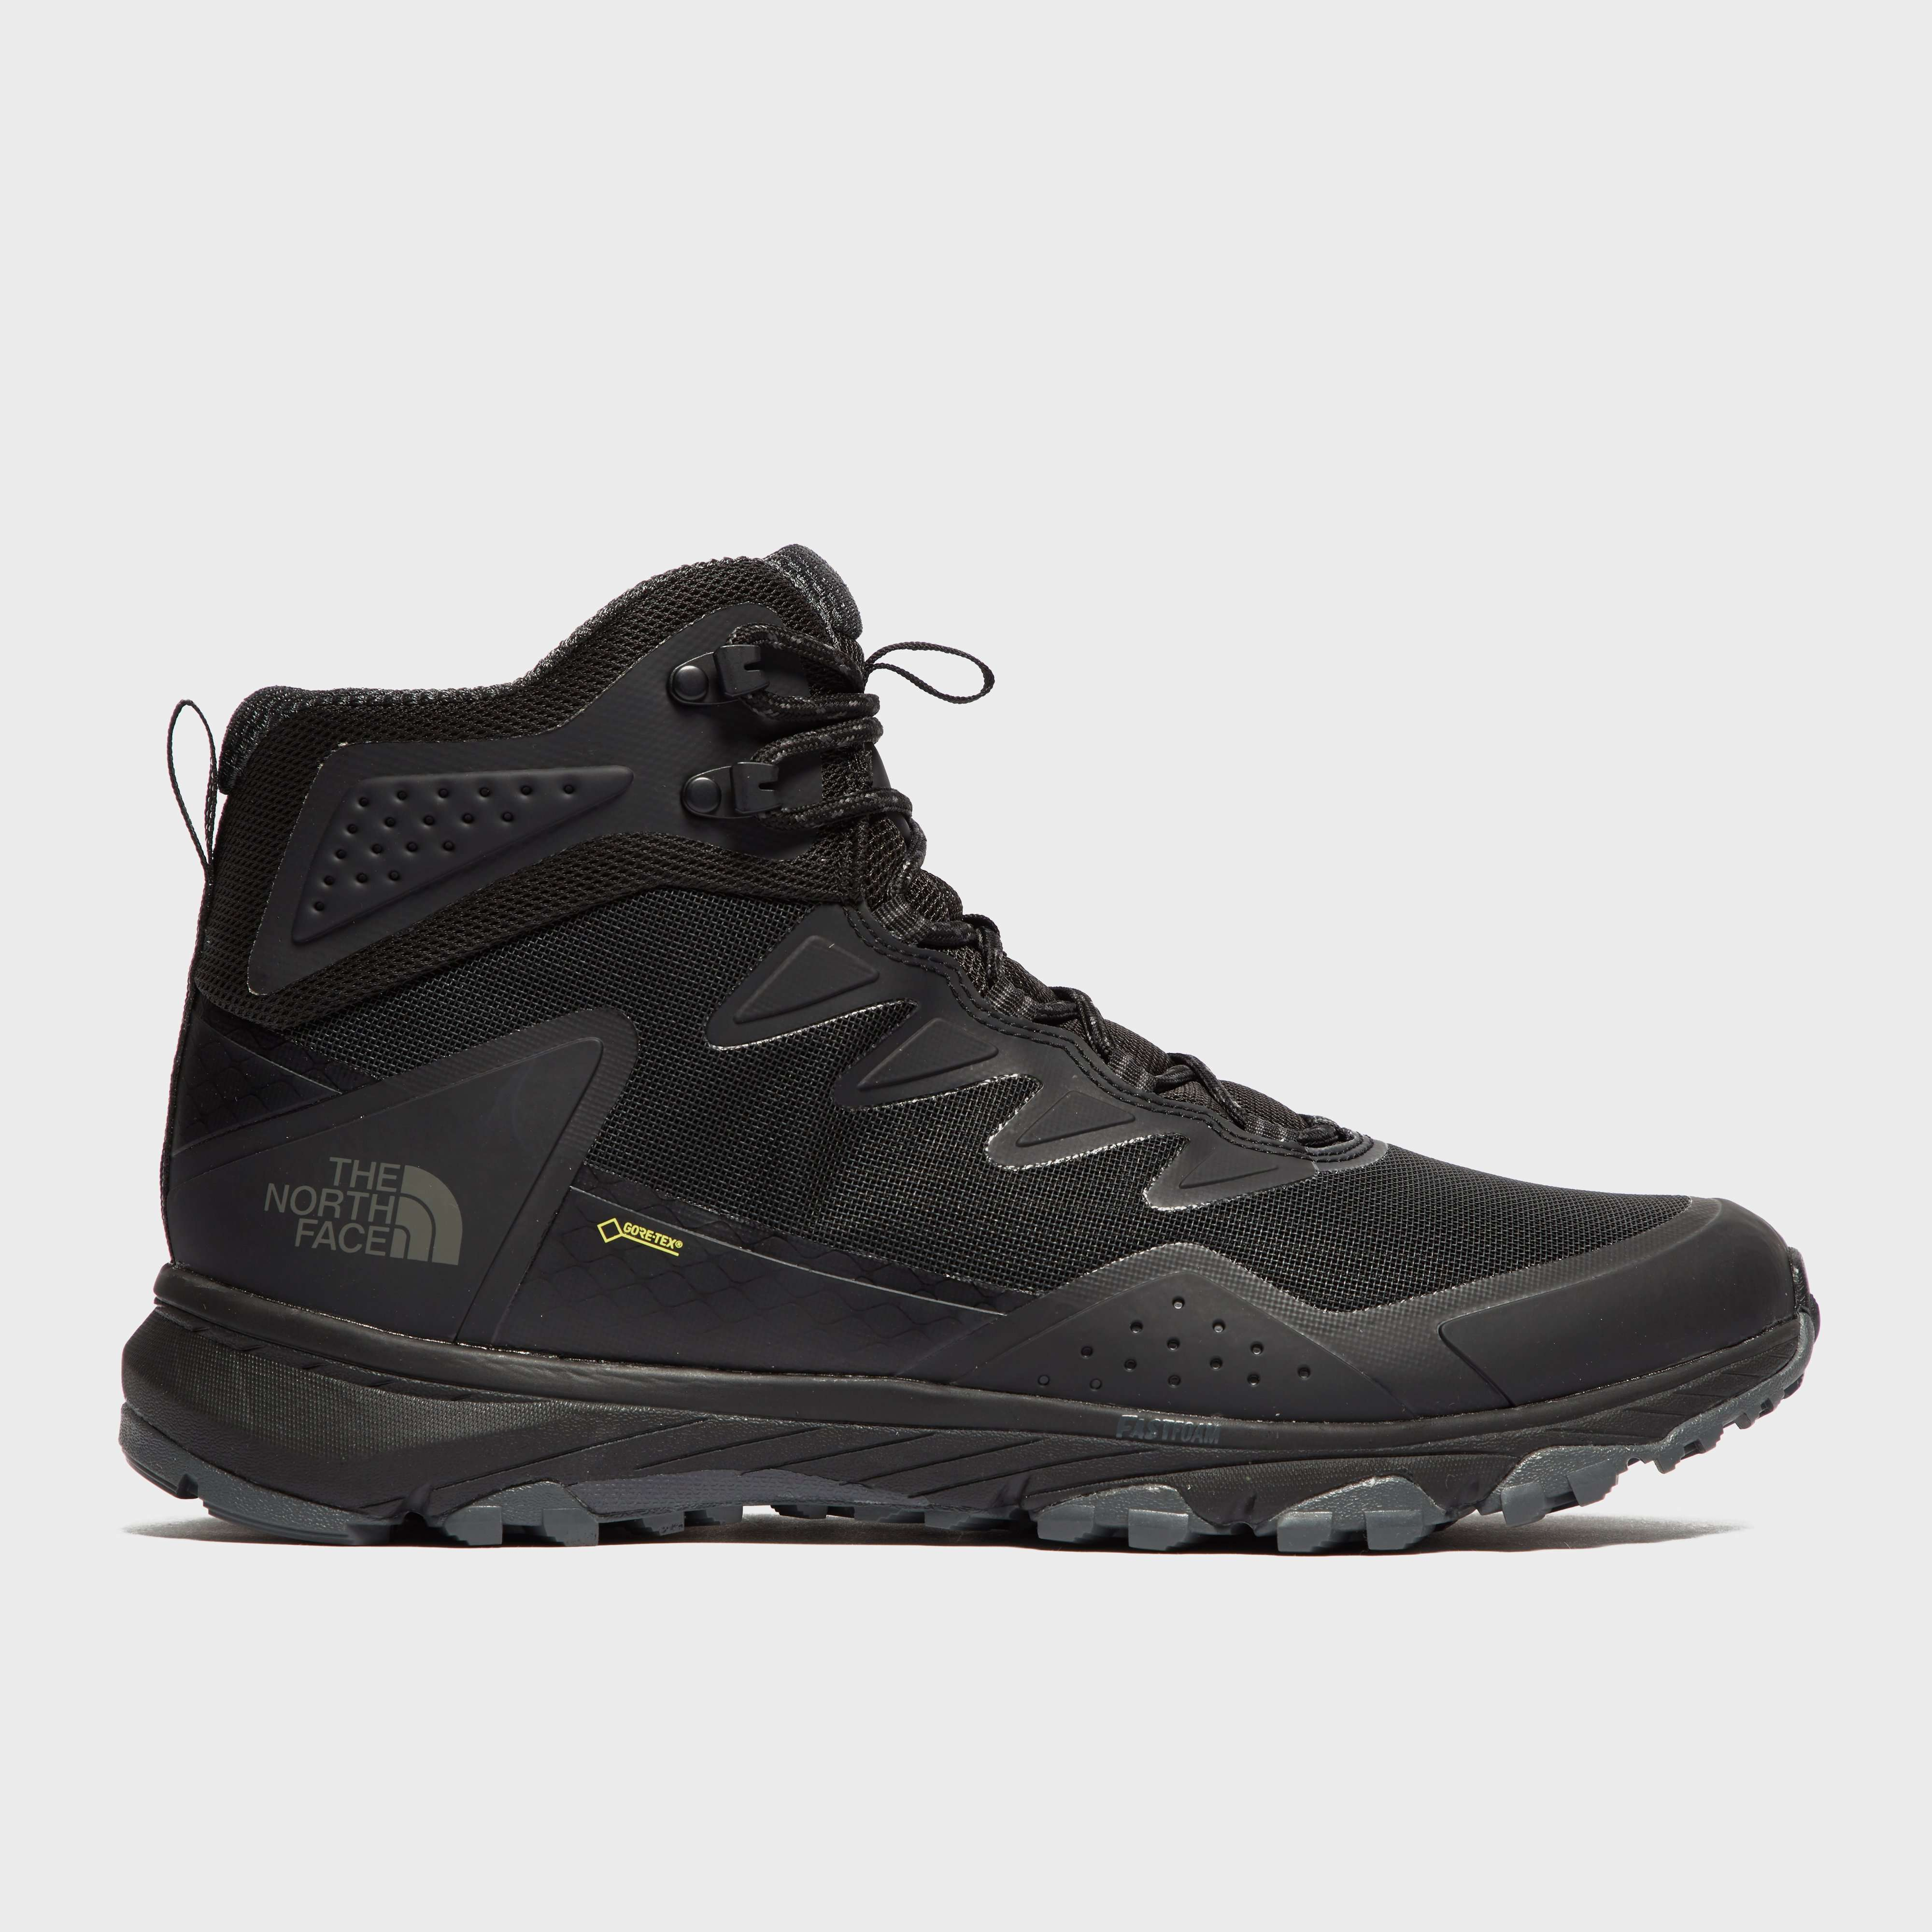 THE NORTH FACE Men's Ultra Fastpack III GORE-TEX® Hiker